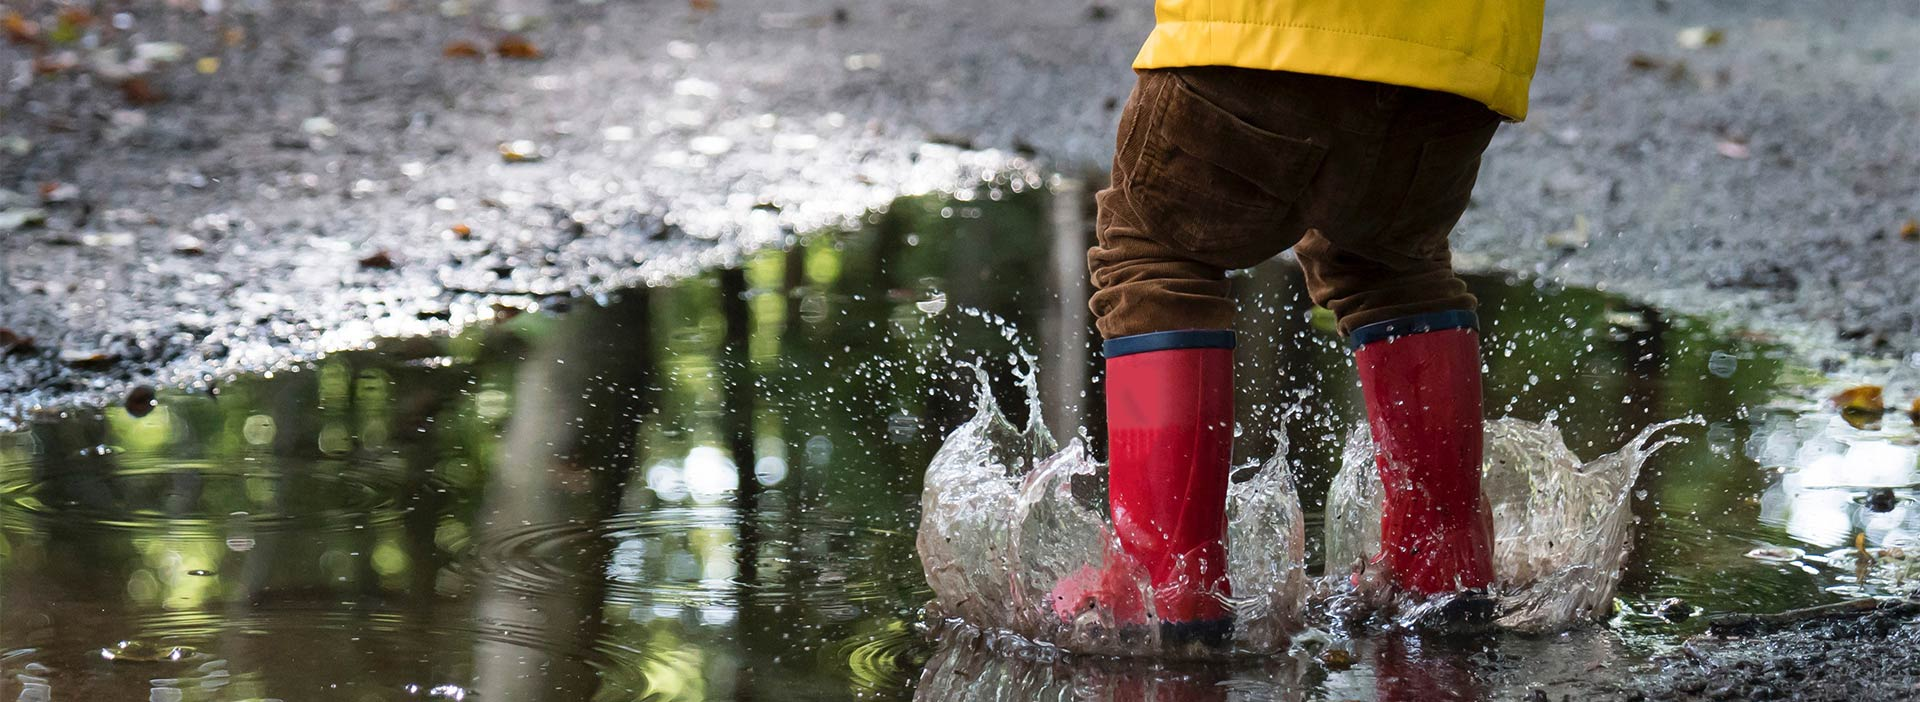 Children Rubber Boots